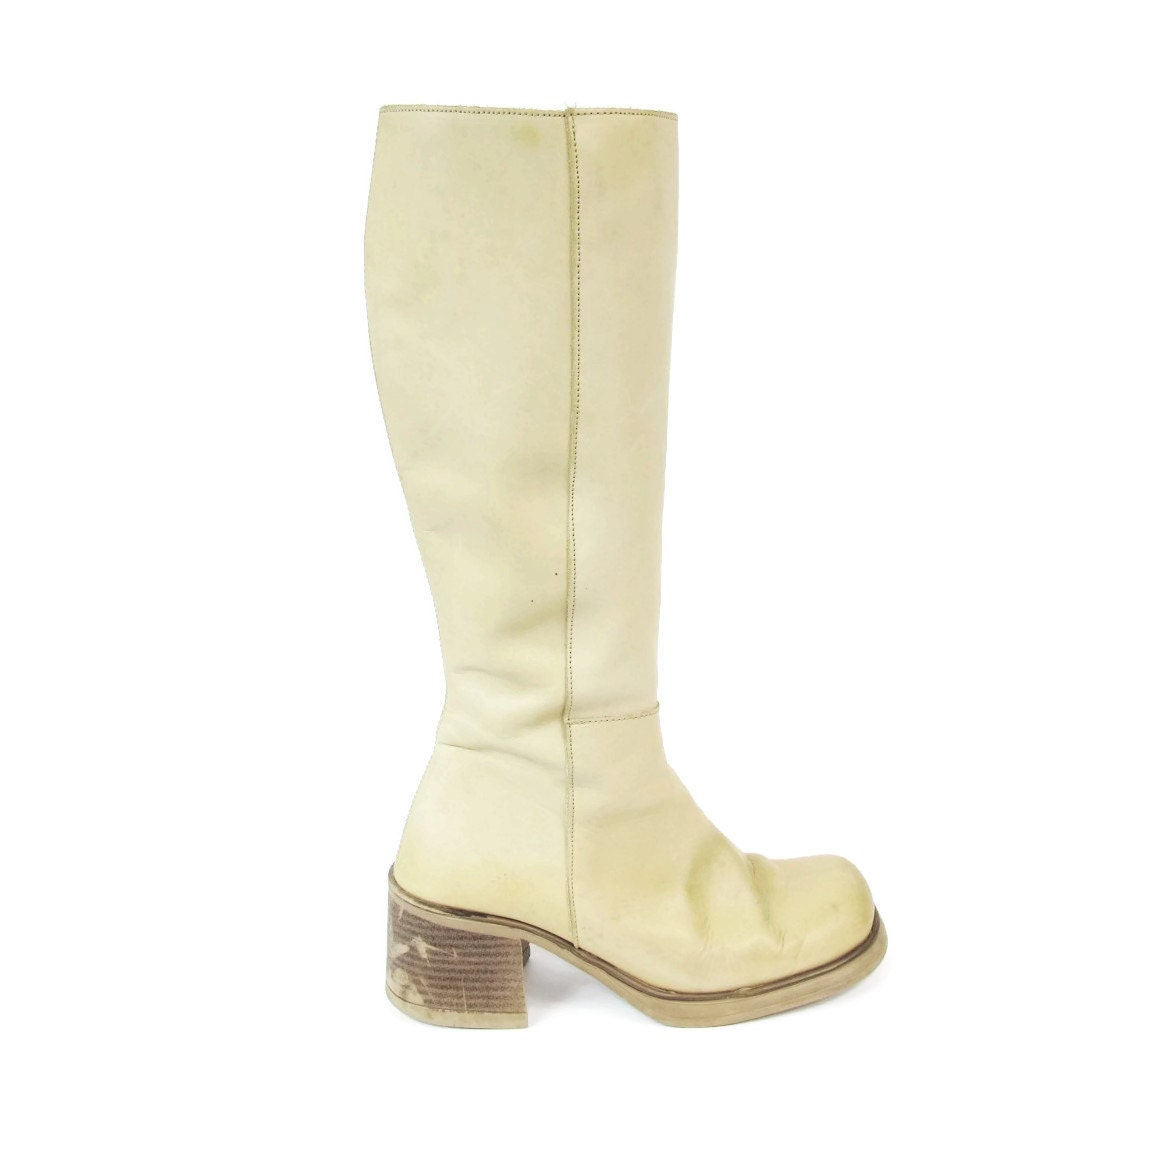 leather knee high boots beige boots 1990s chunky